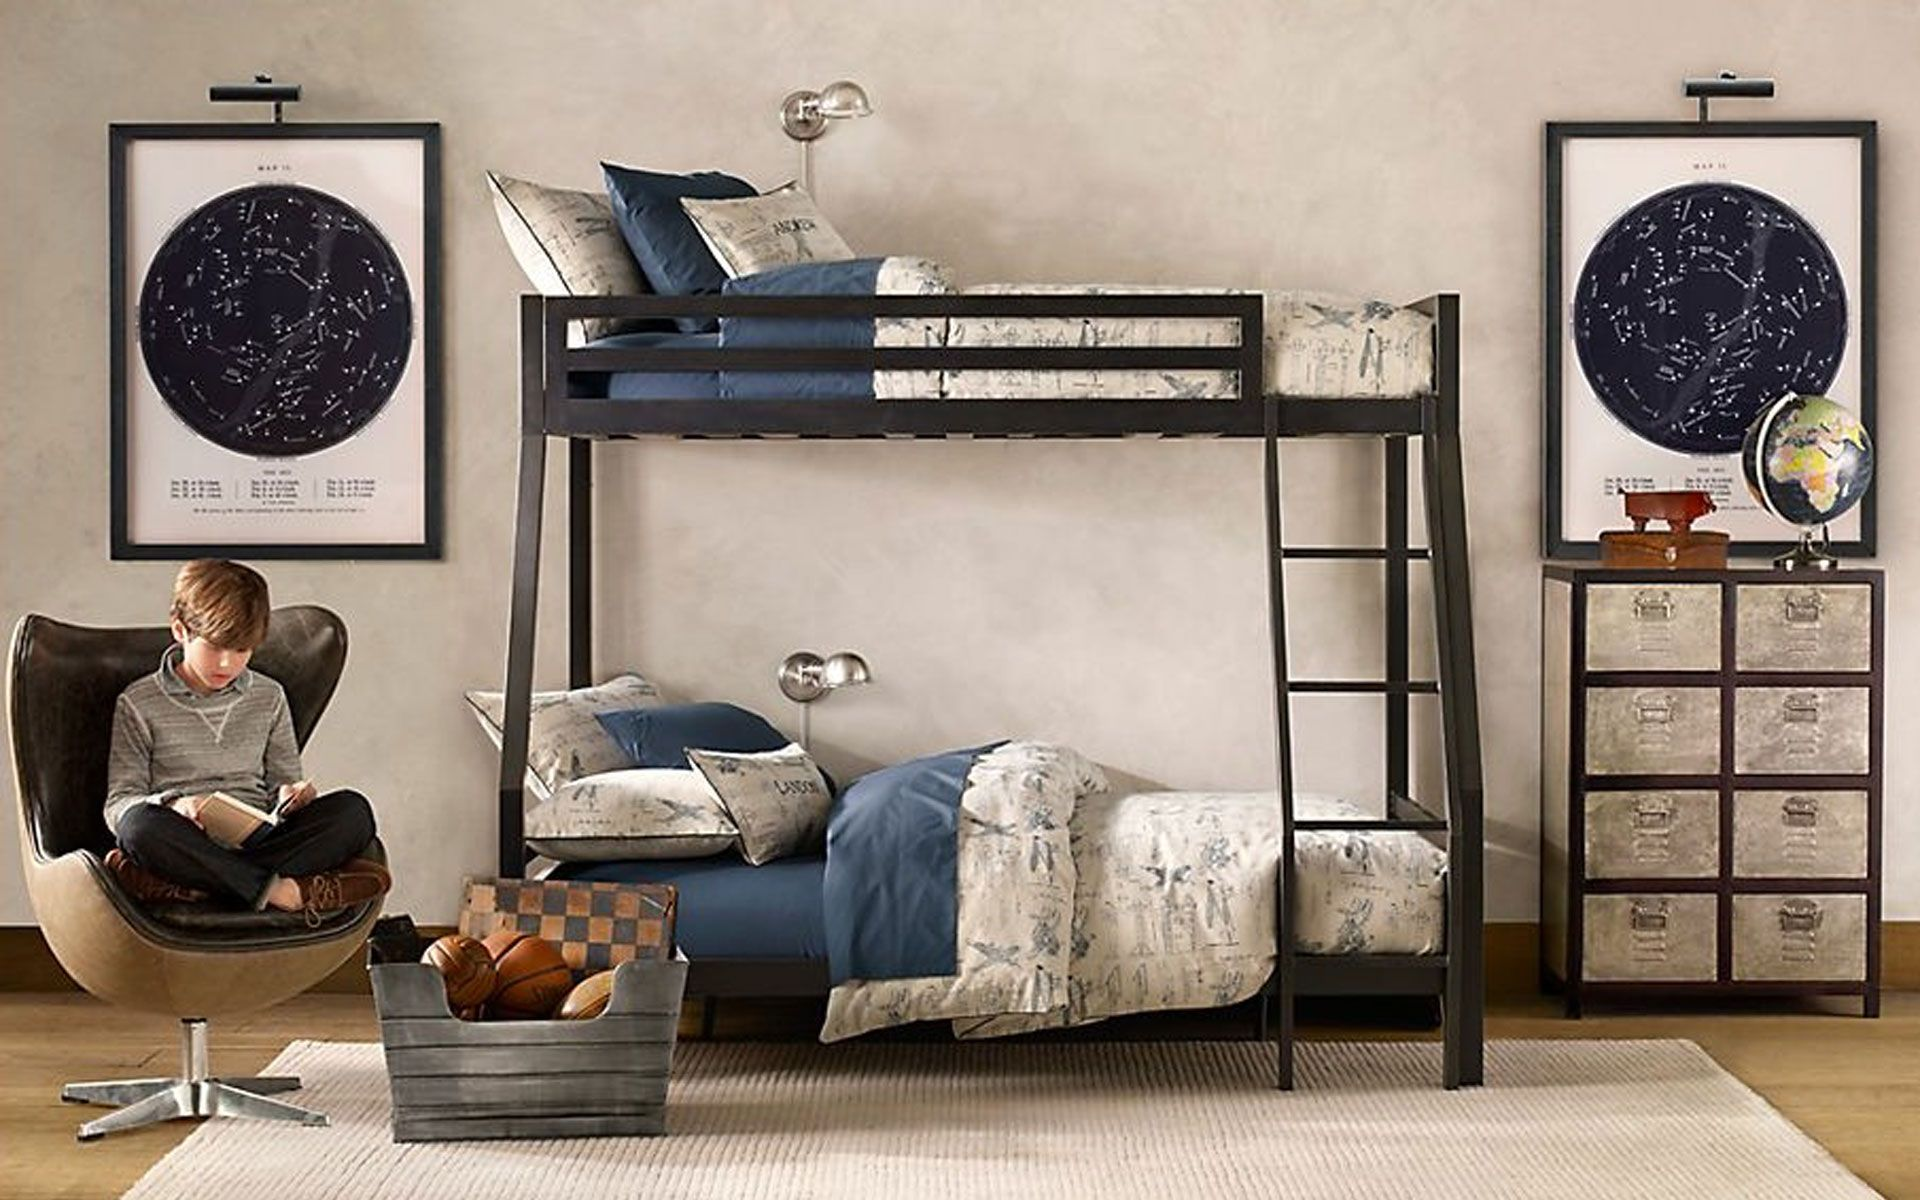 Bedroom designs for boys black - Galvanized Metal Furniture For A Teen Room Ideas Inspiration Design Exquisite Boys Room Ideas